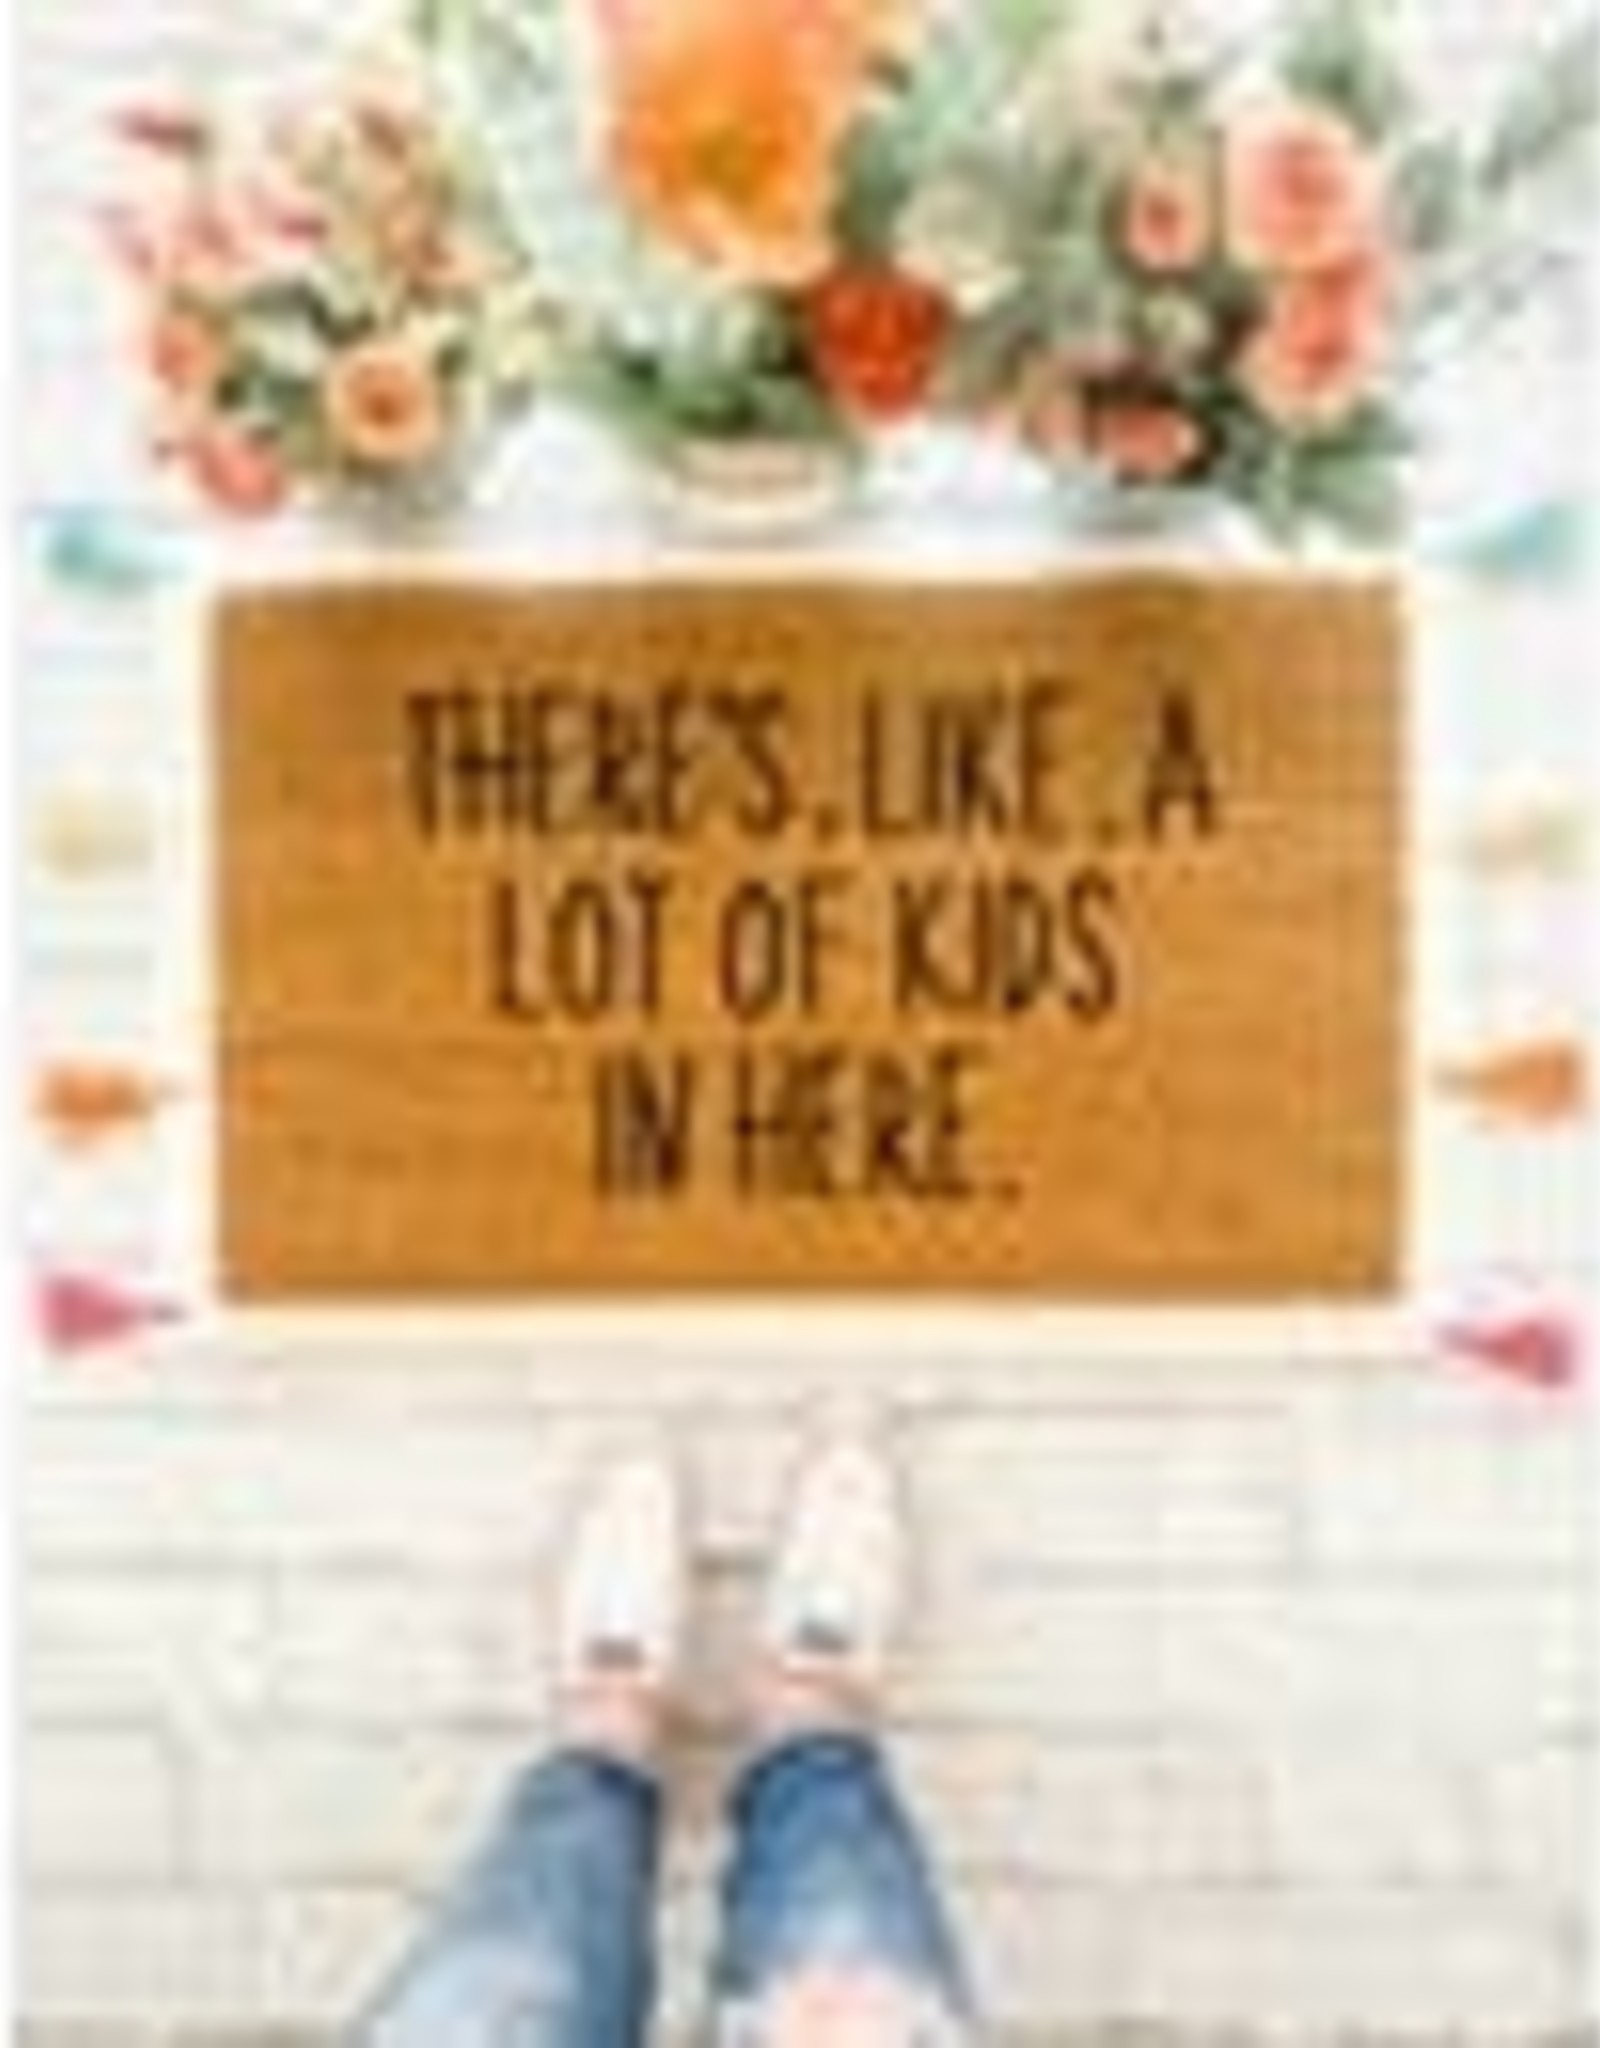 LIKE A LOT OF KIDS DOORMAT